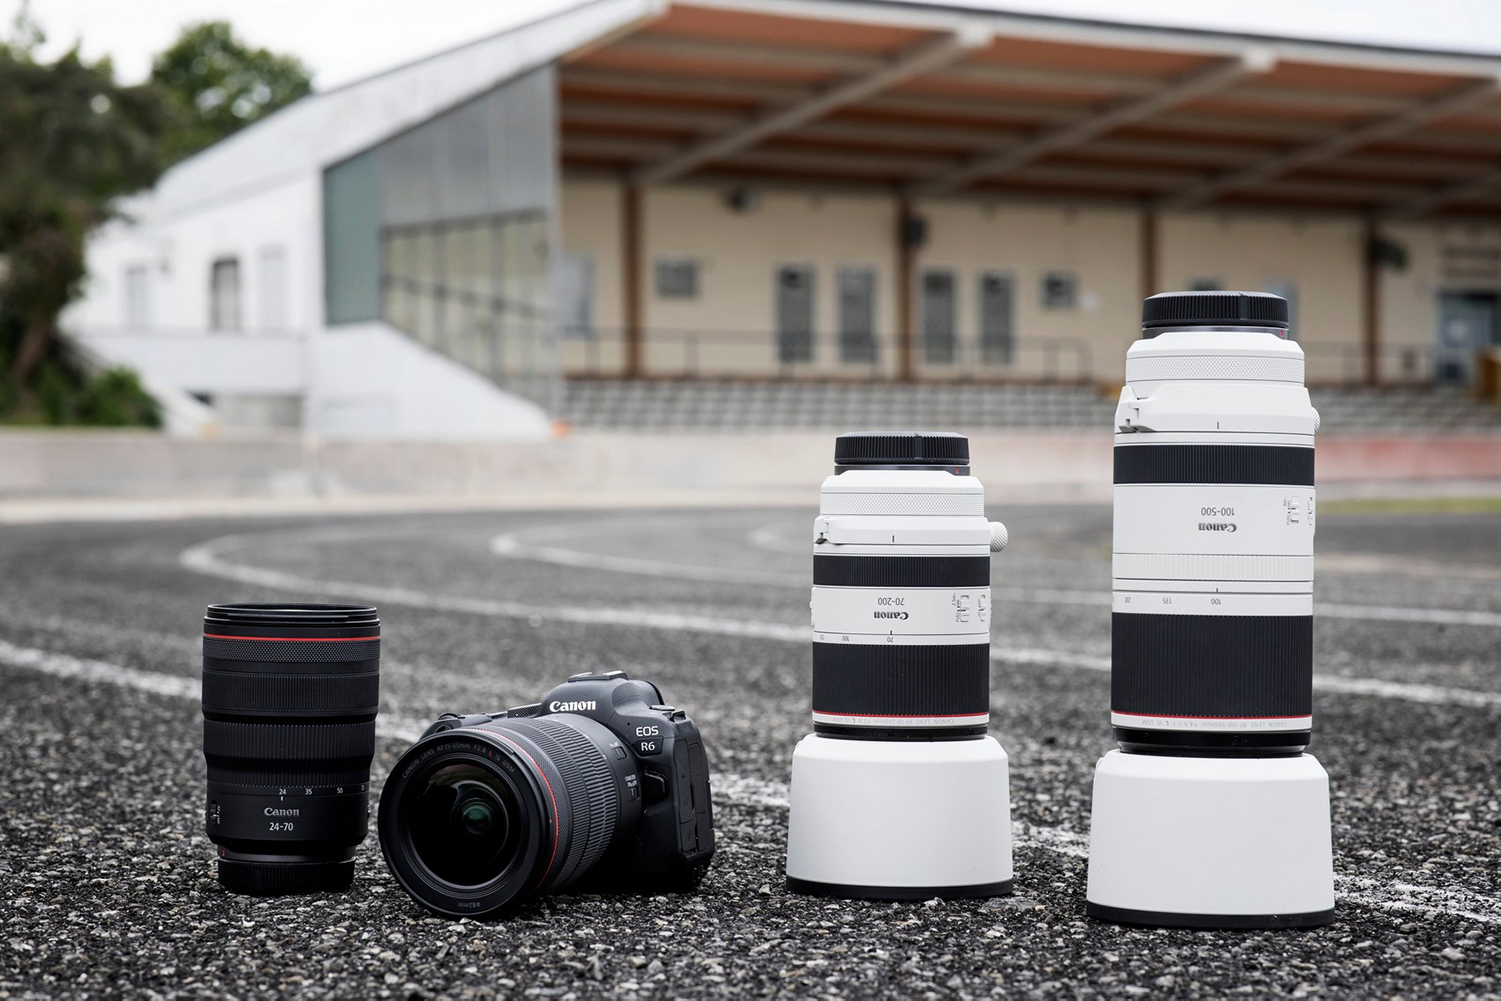 July saw Canon launch 2 mirrorless cameras to match their pro glass.